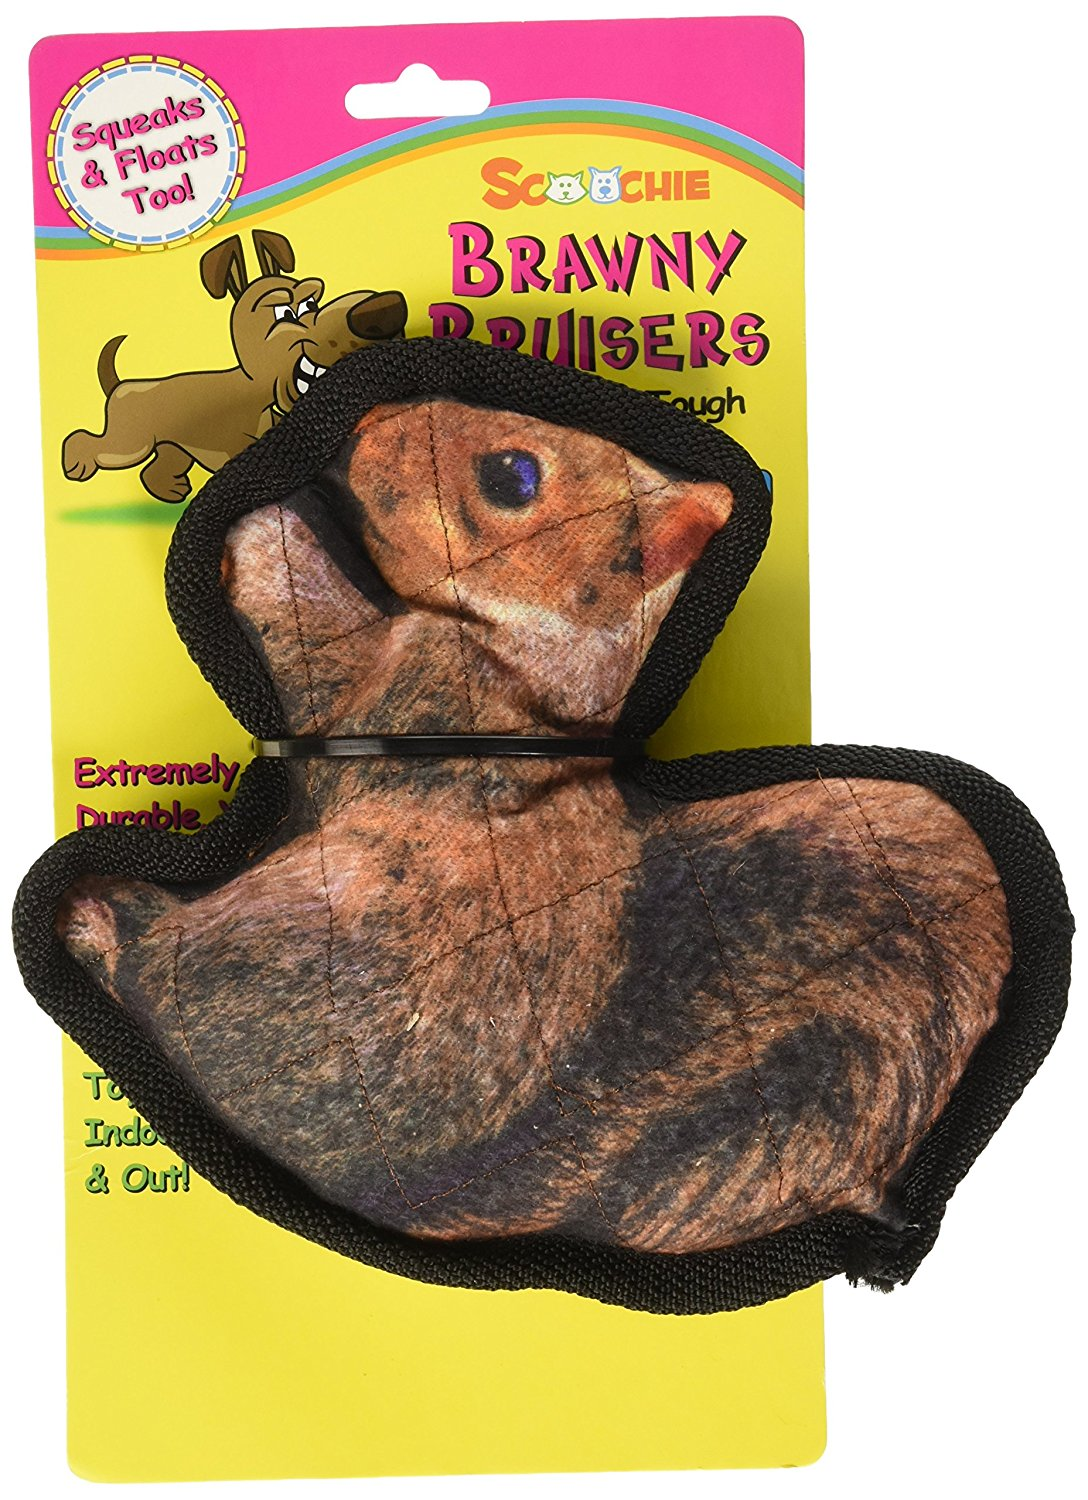 Scoochie Pet Products 513 Brawny Bruisers Scoochie Squirrel, 8""